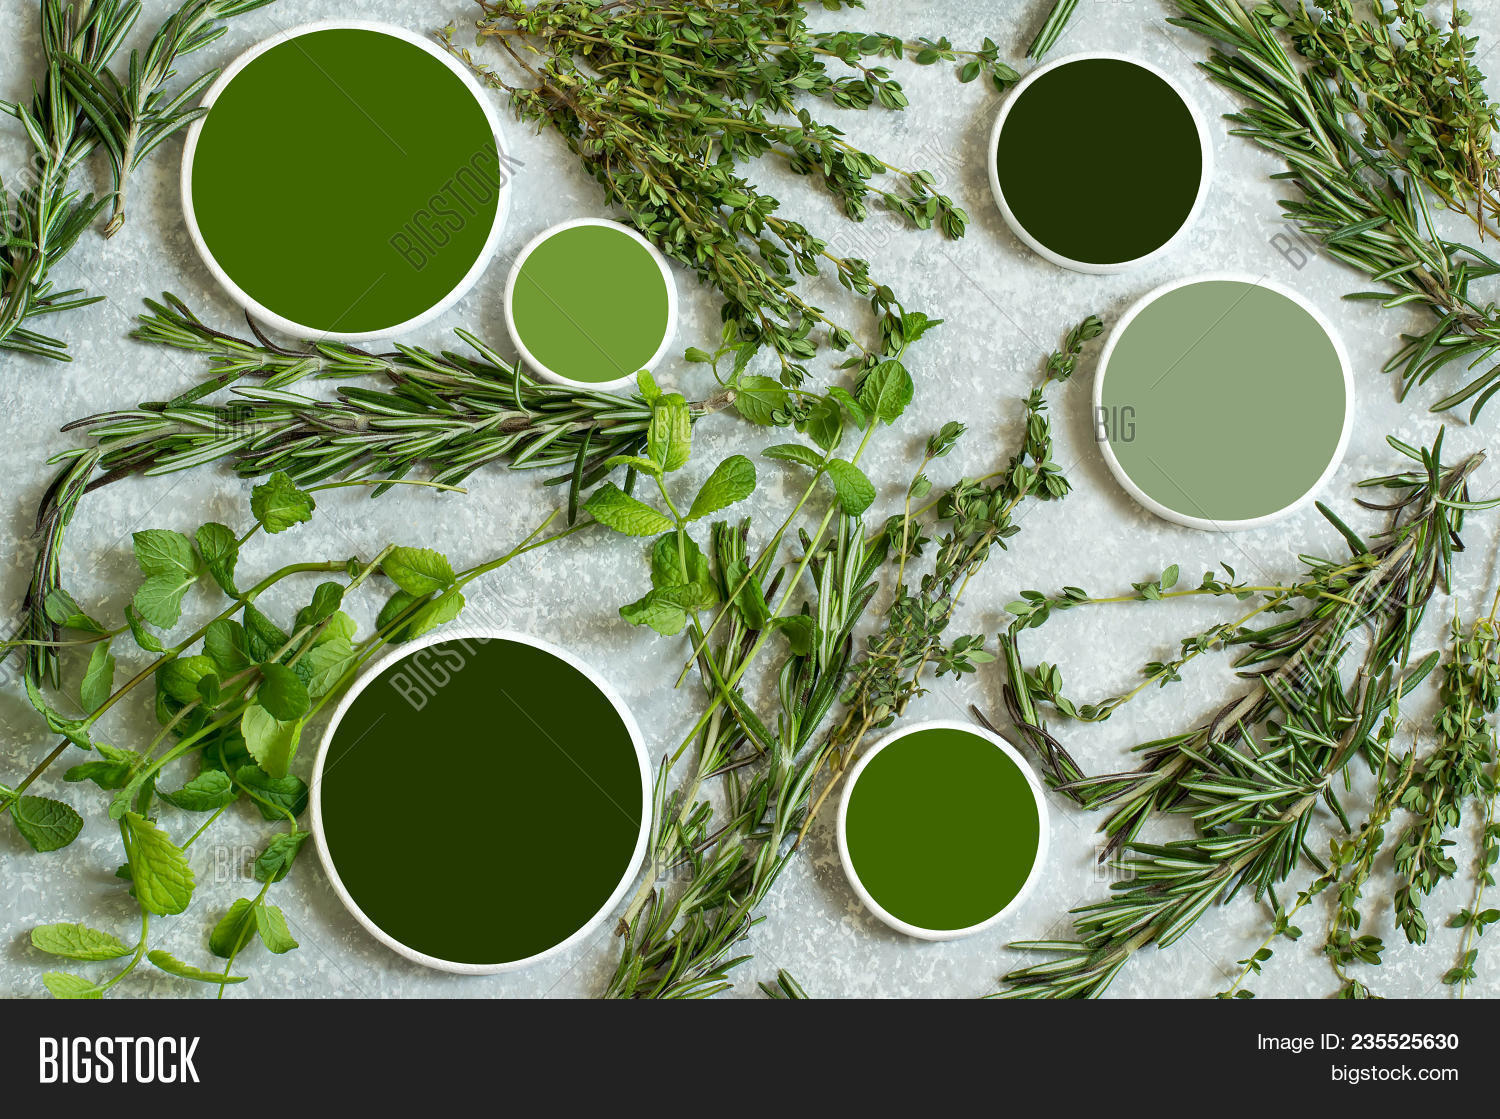 Aromatic Herbs Image & Photo (Free Trial) | Bigstock